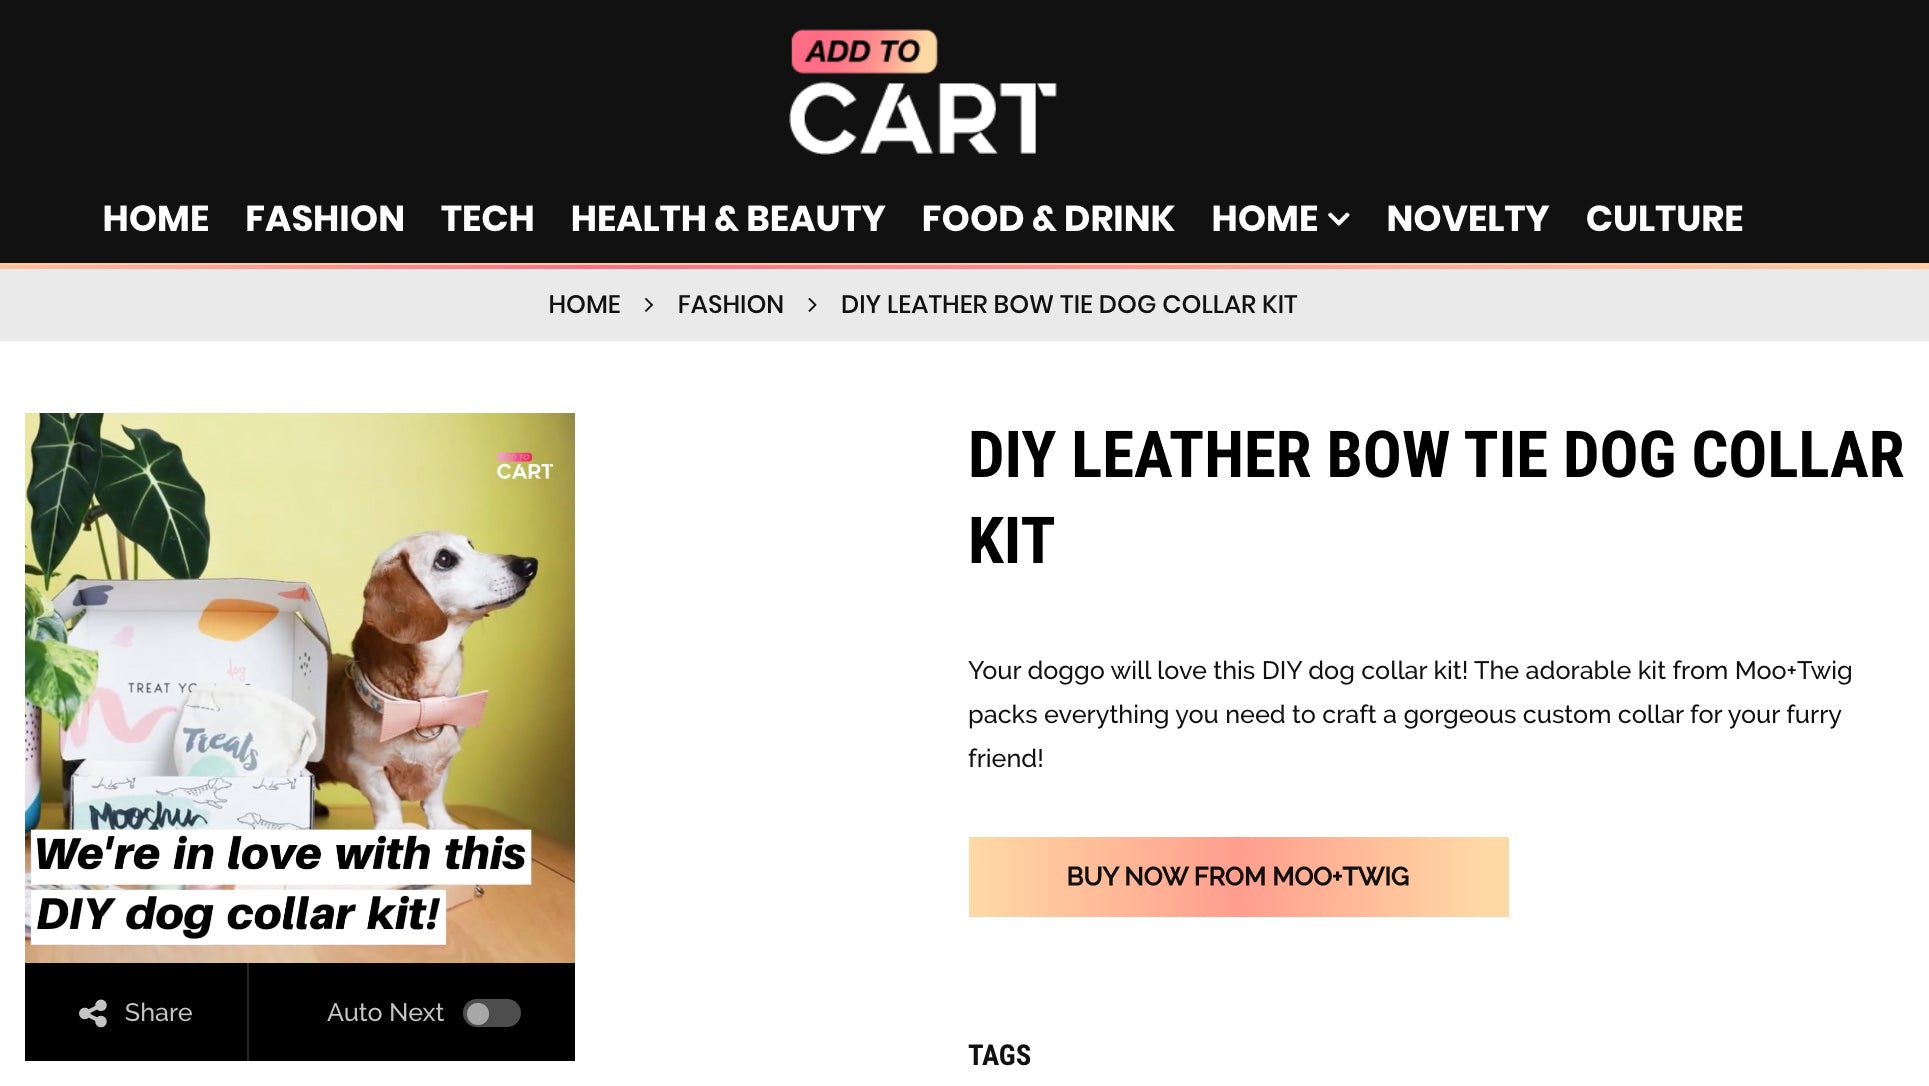 Add to Cart - Moo and Twig DIY Dog Collar Kit